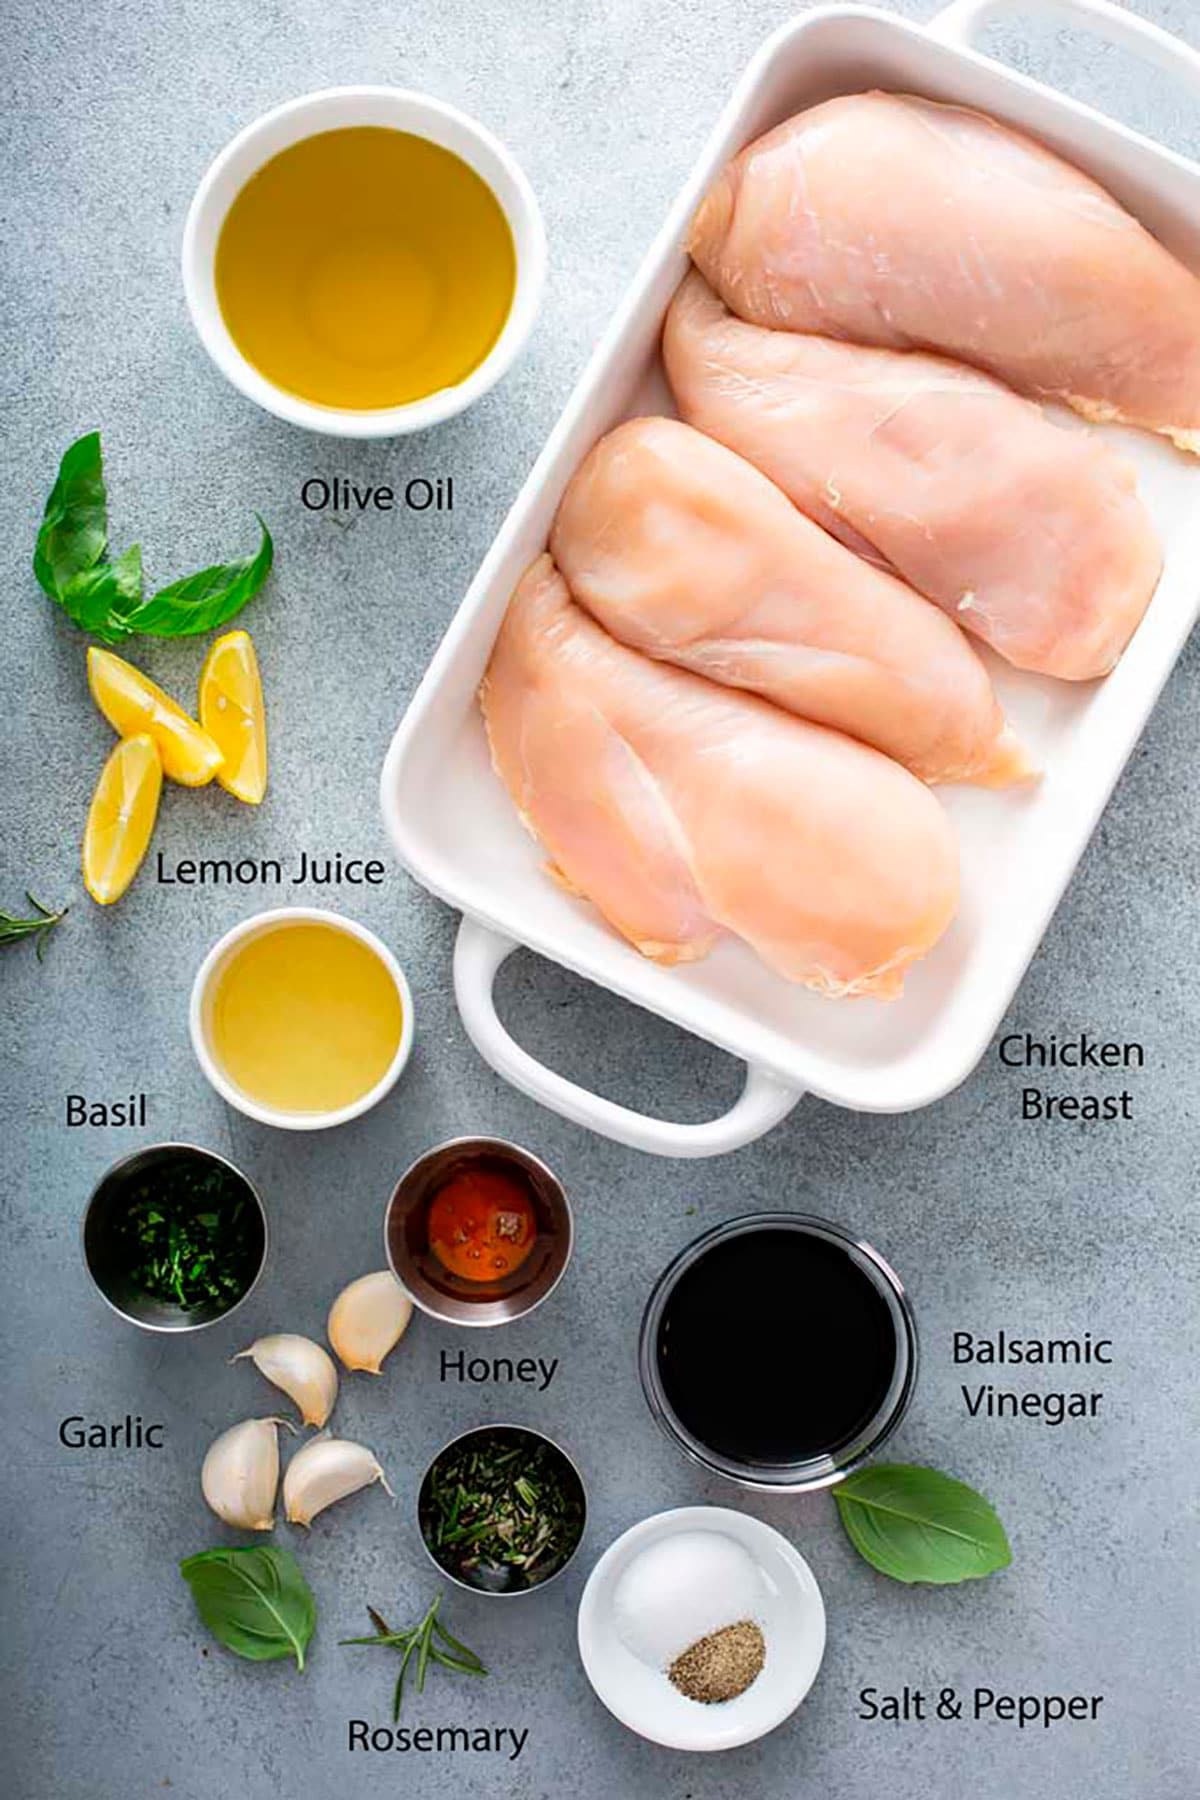 Grilled Chicken Breast - Lemon Blossoms: Ingredients to make grilled chicken with the best balsamic marinade